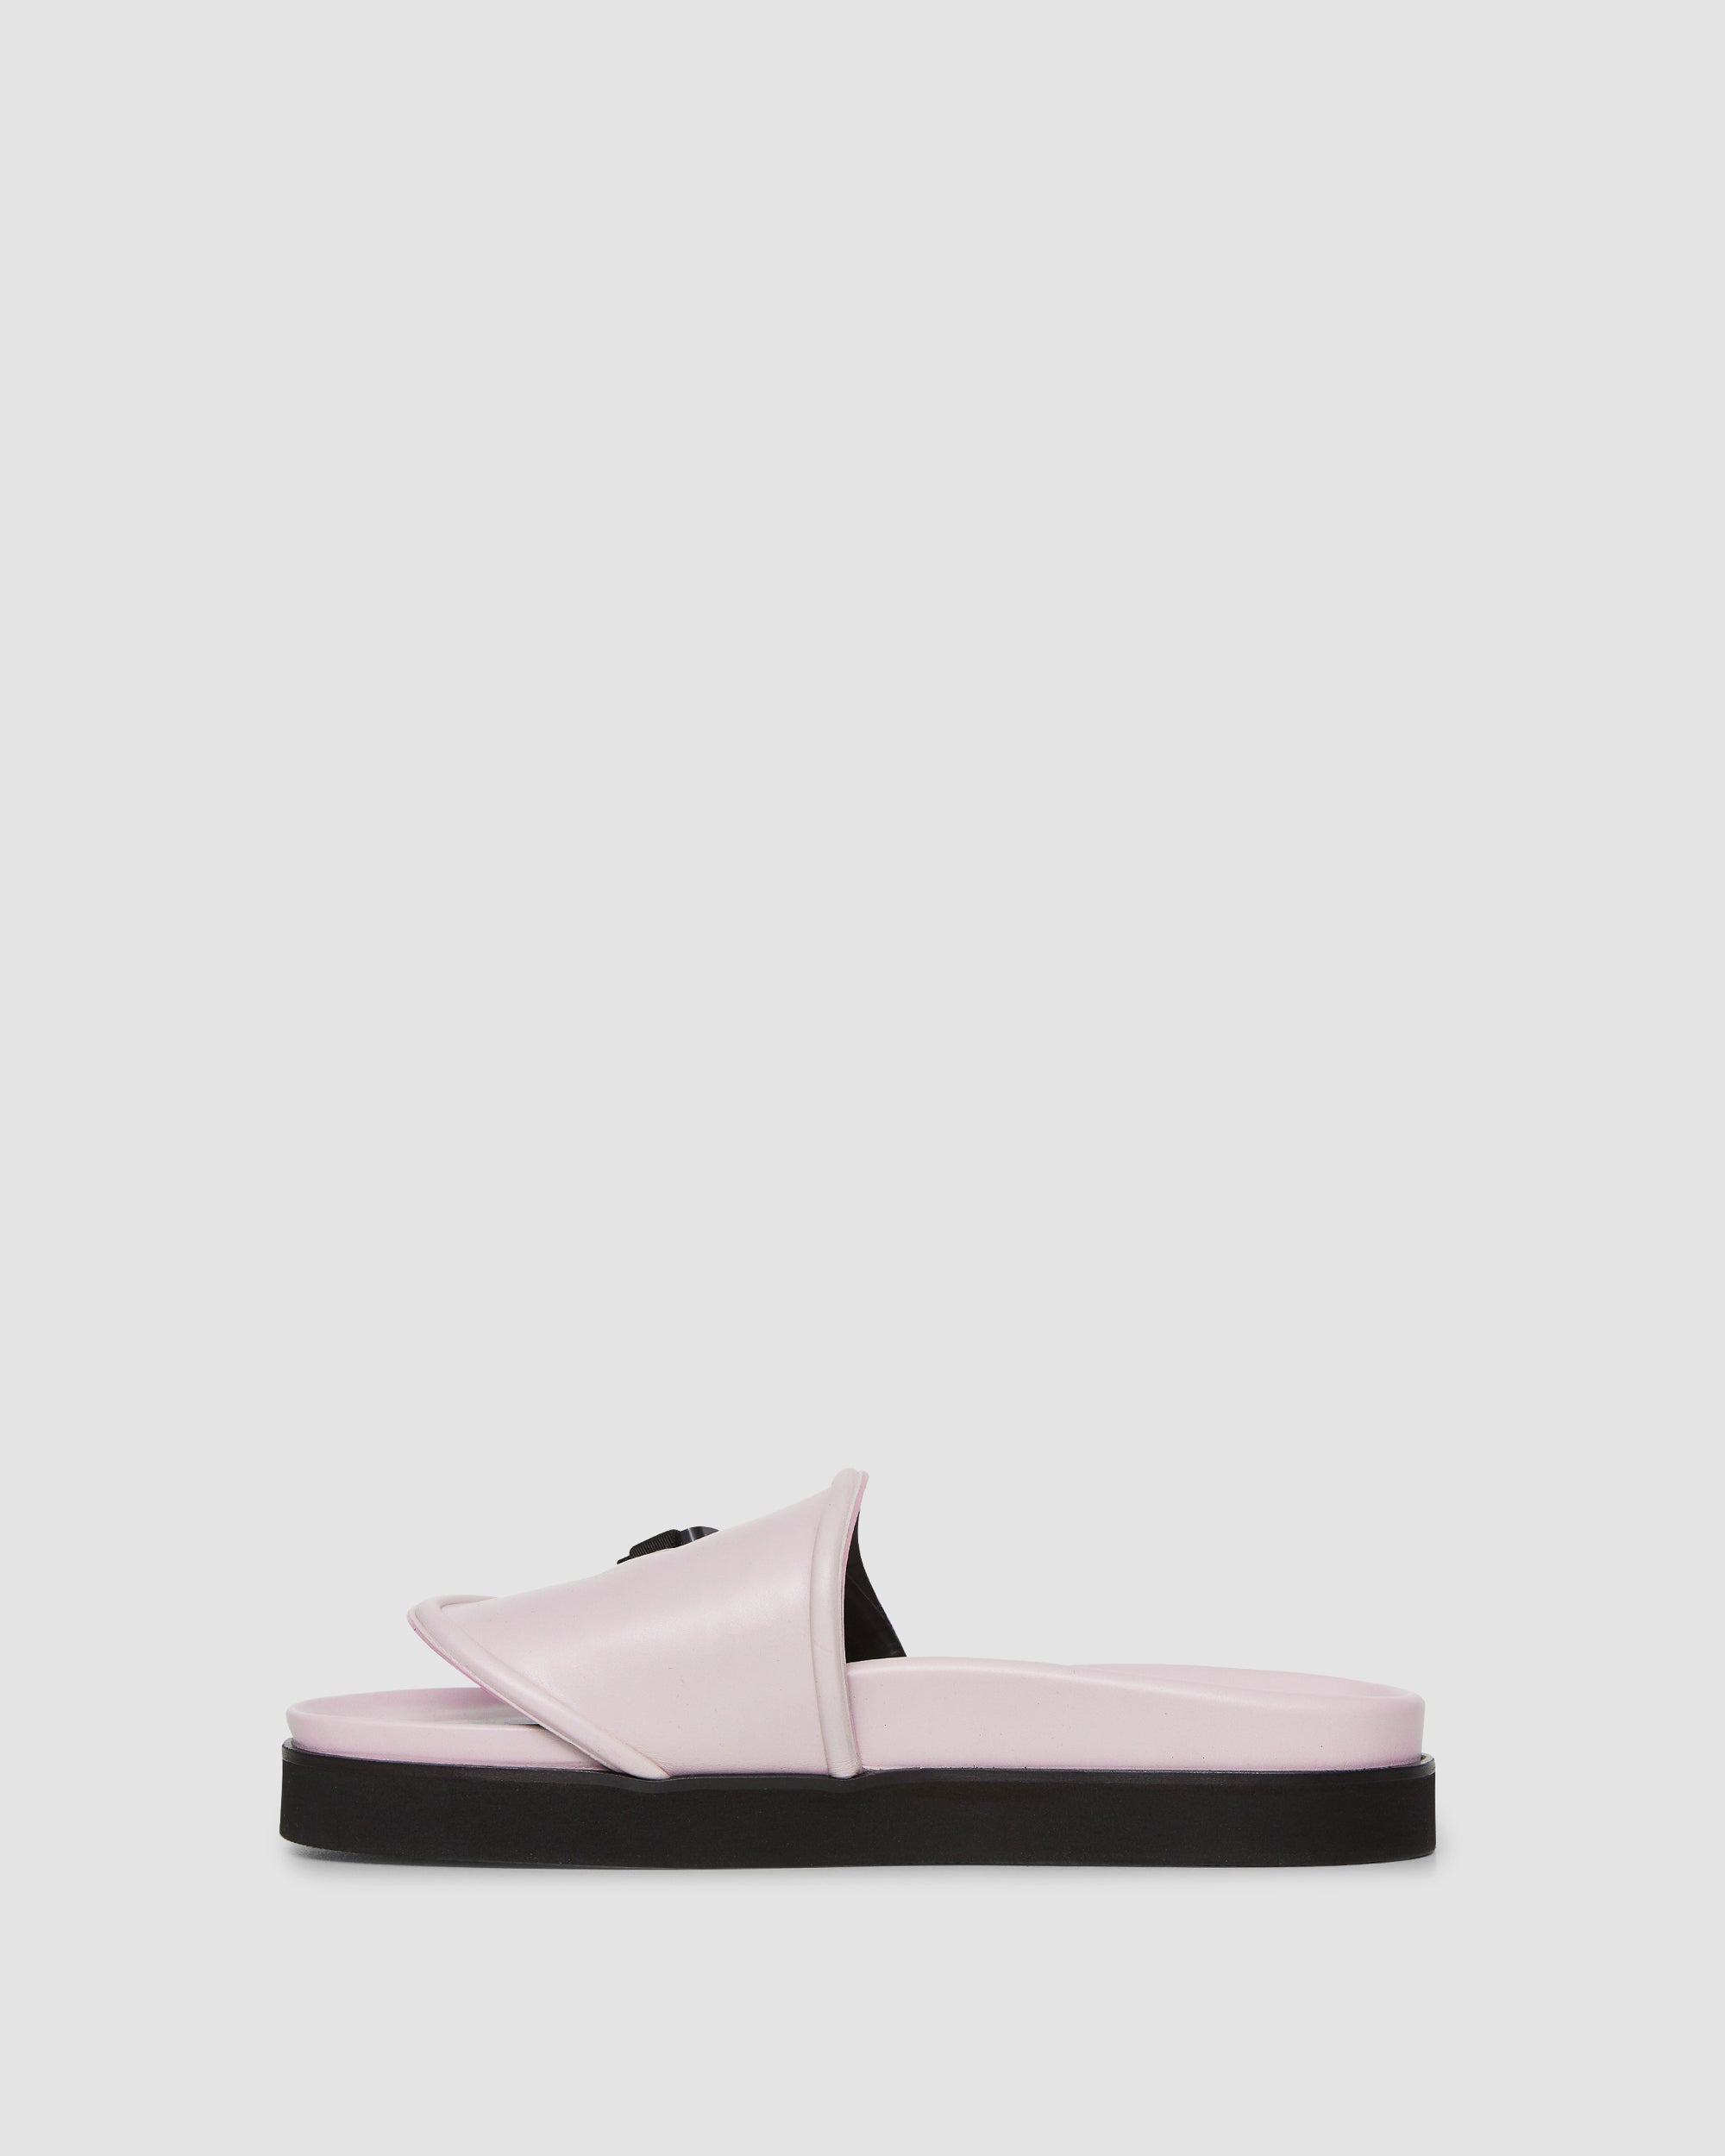 1017 ALYX 9SM | SLIDES | Shoe | Google Shopping, PINK, S20, S20 Drop II, Shoes, SLIDES & THONGS, Woman